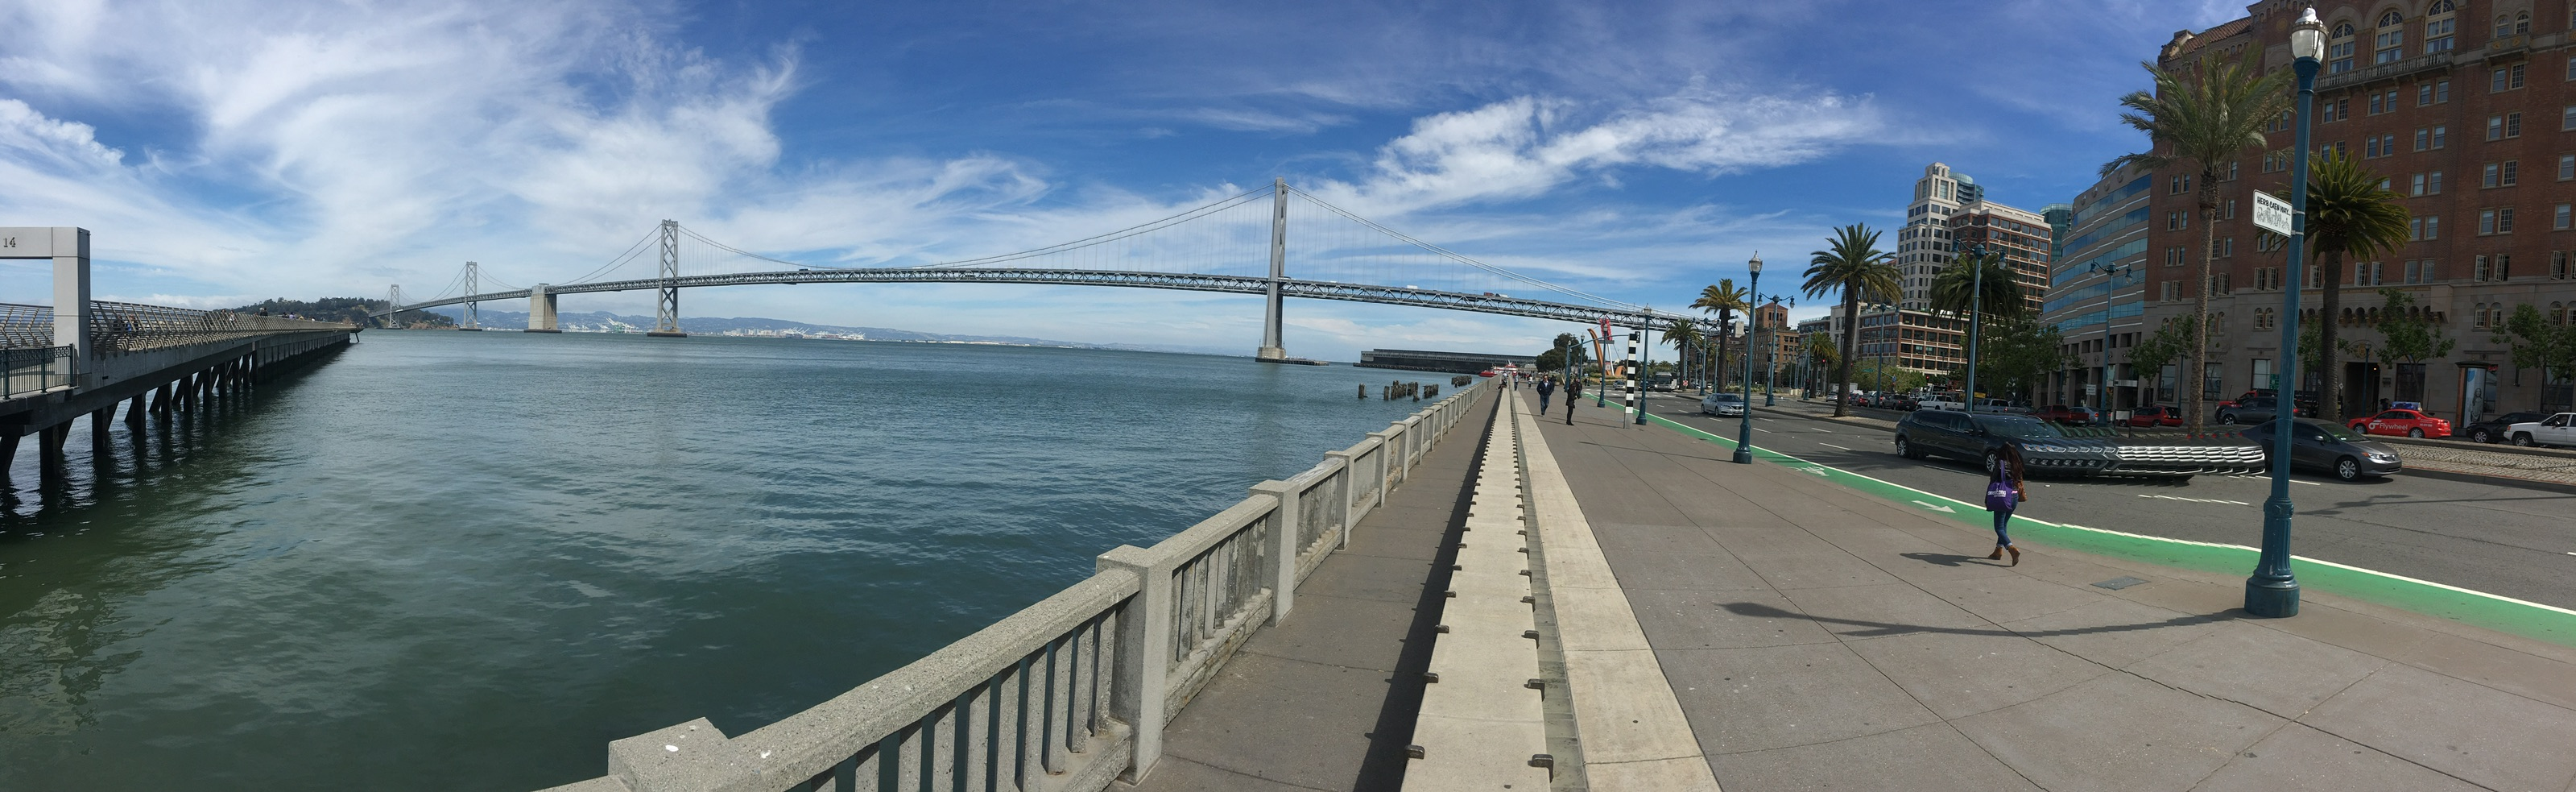 The Bay Bridge :D